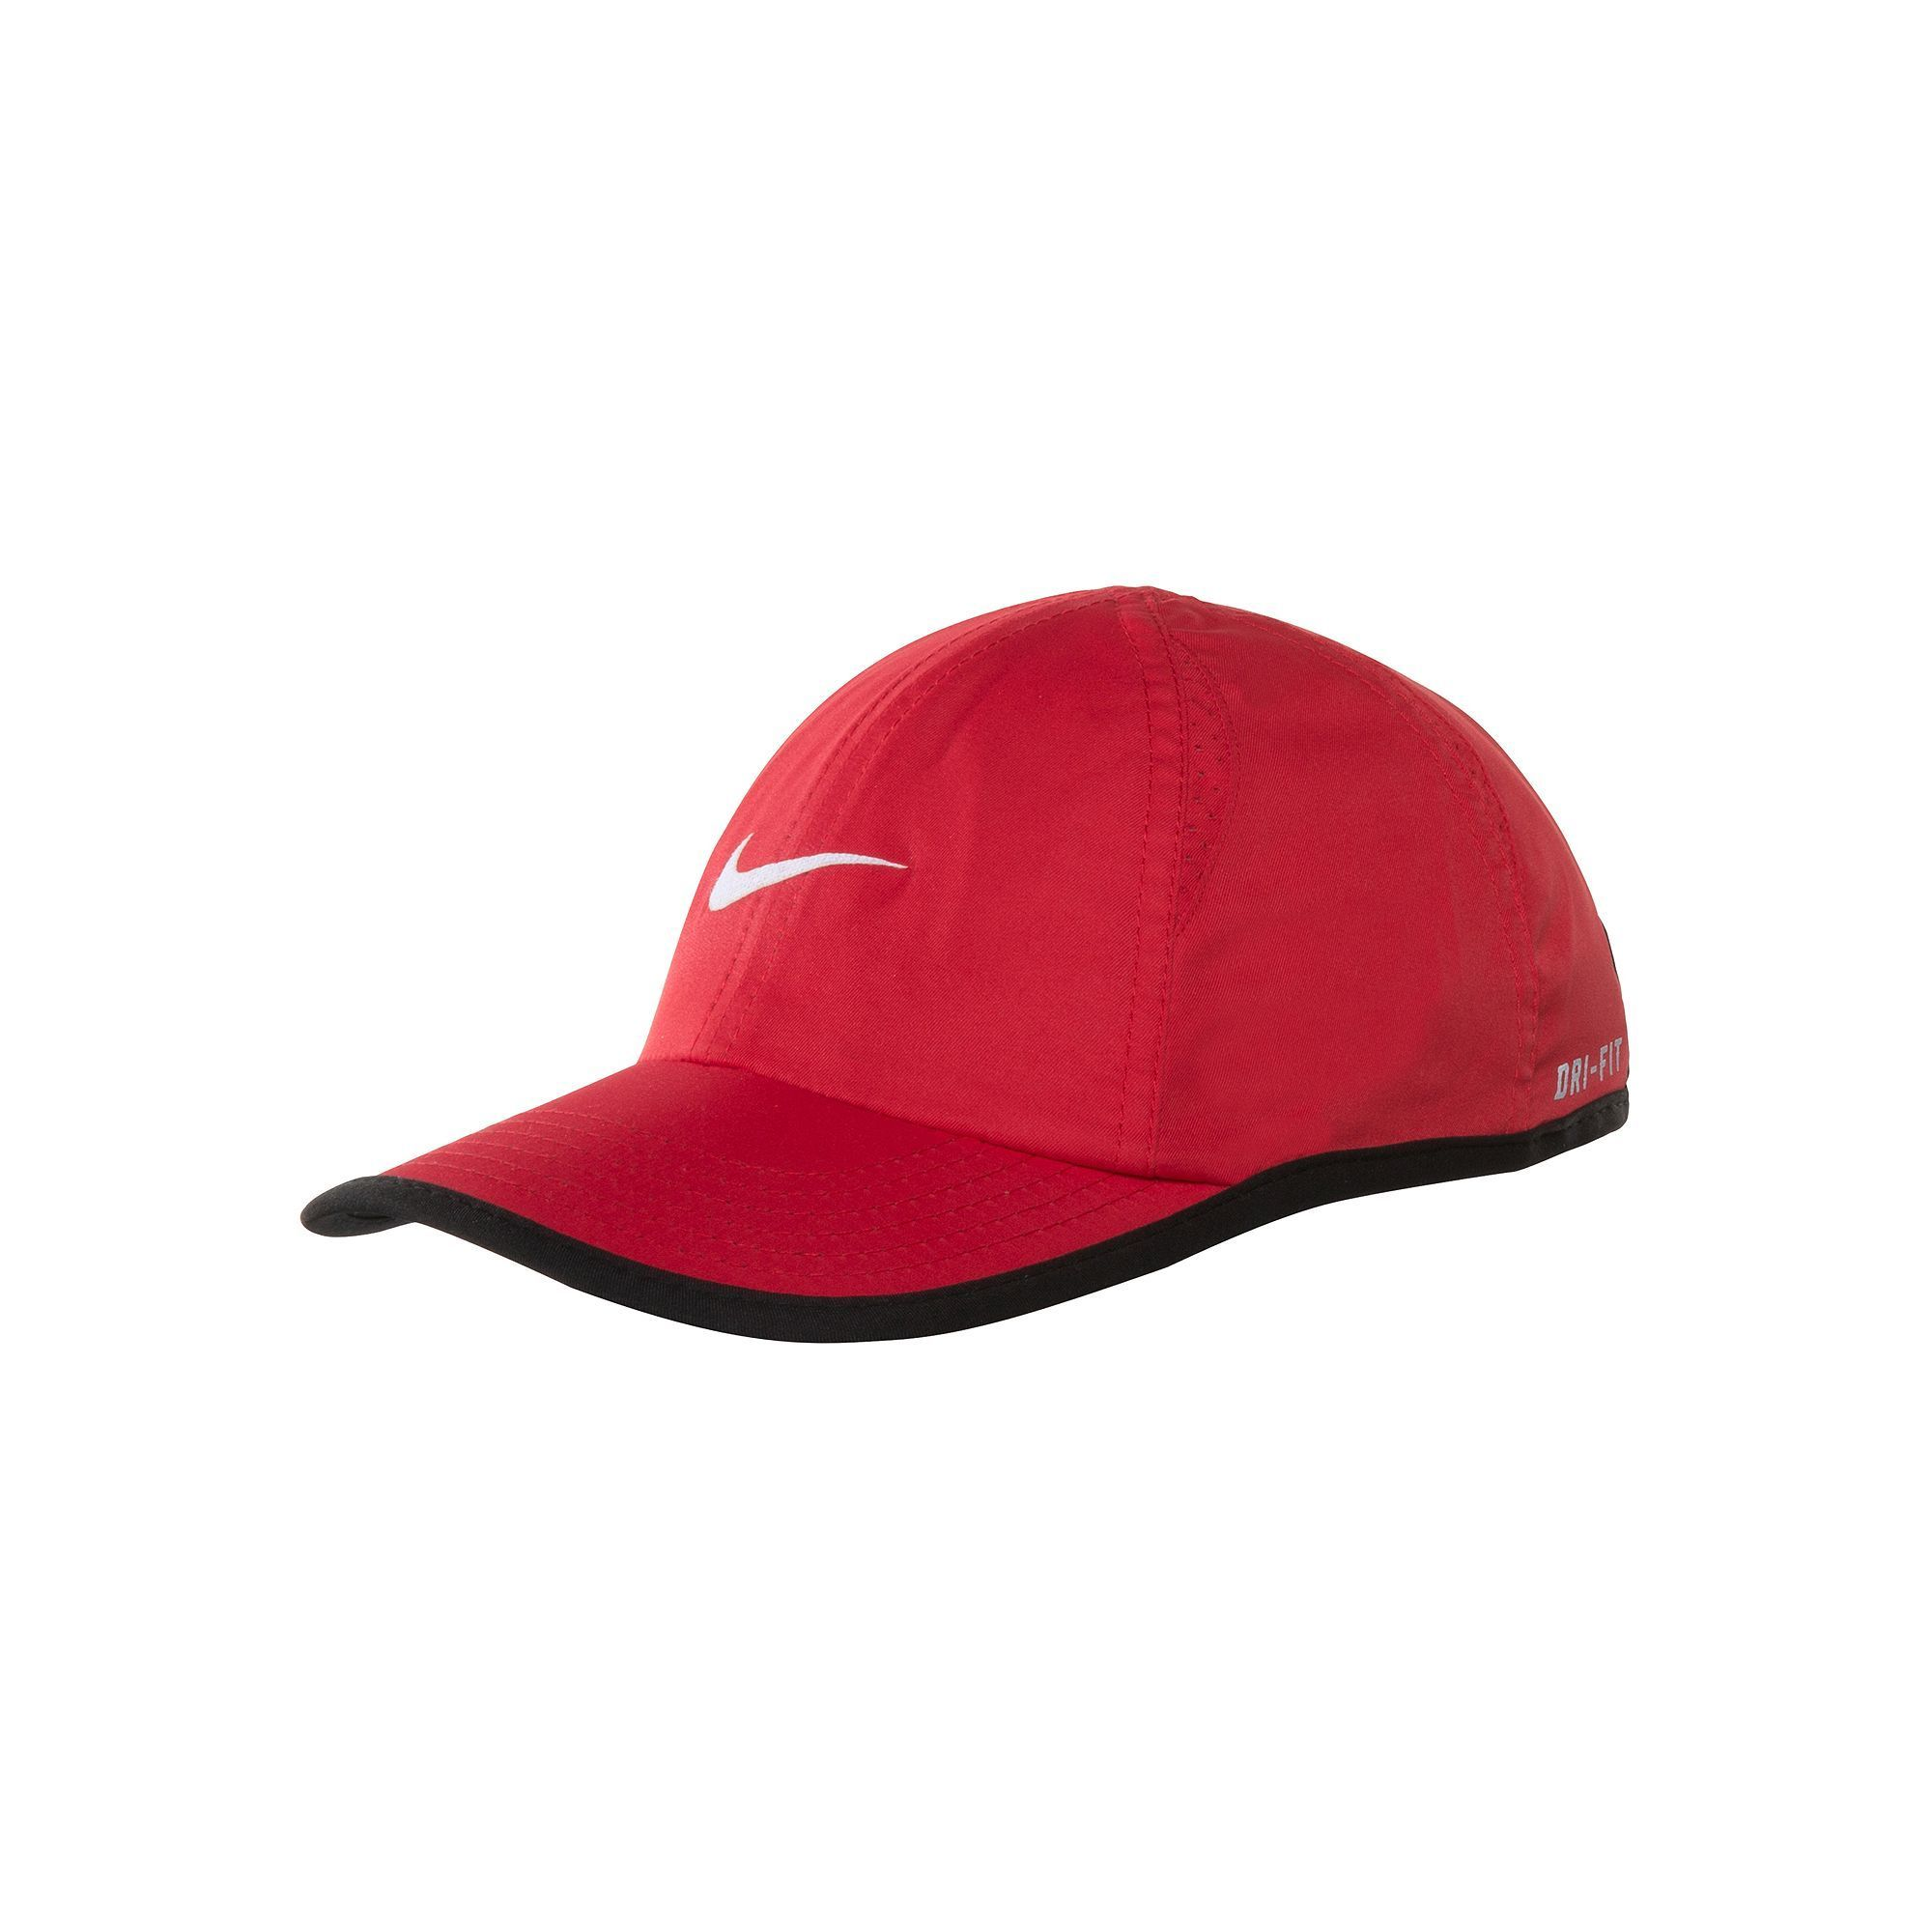 ee21034c Baby Boy Nike Dri-FIT Feather Light Cap | Products | Baby boy nike ...